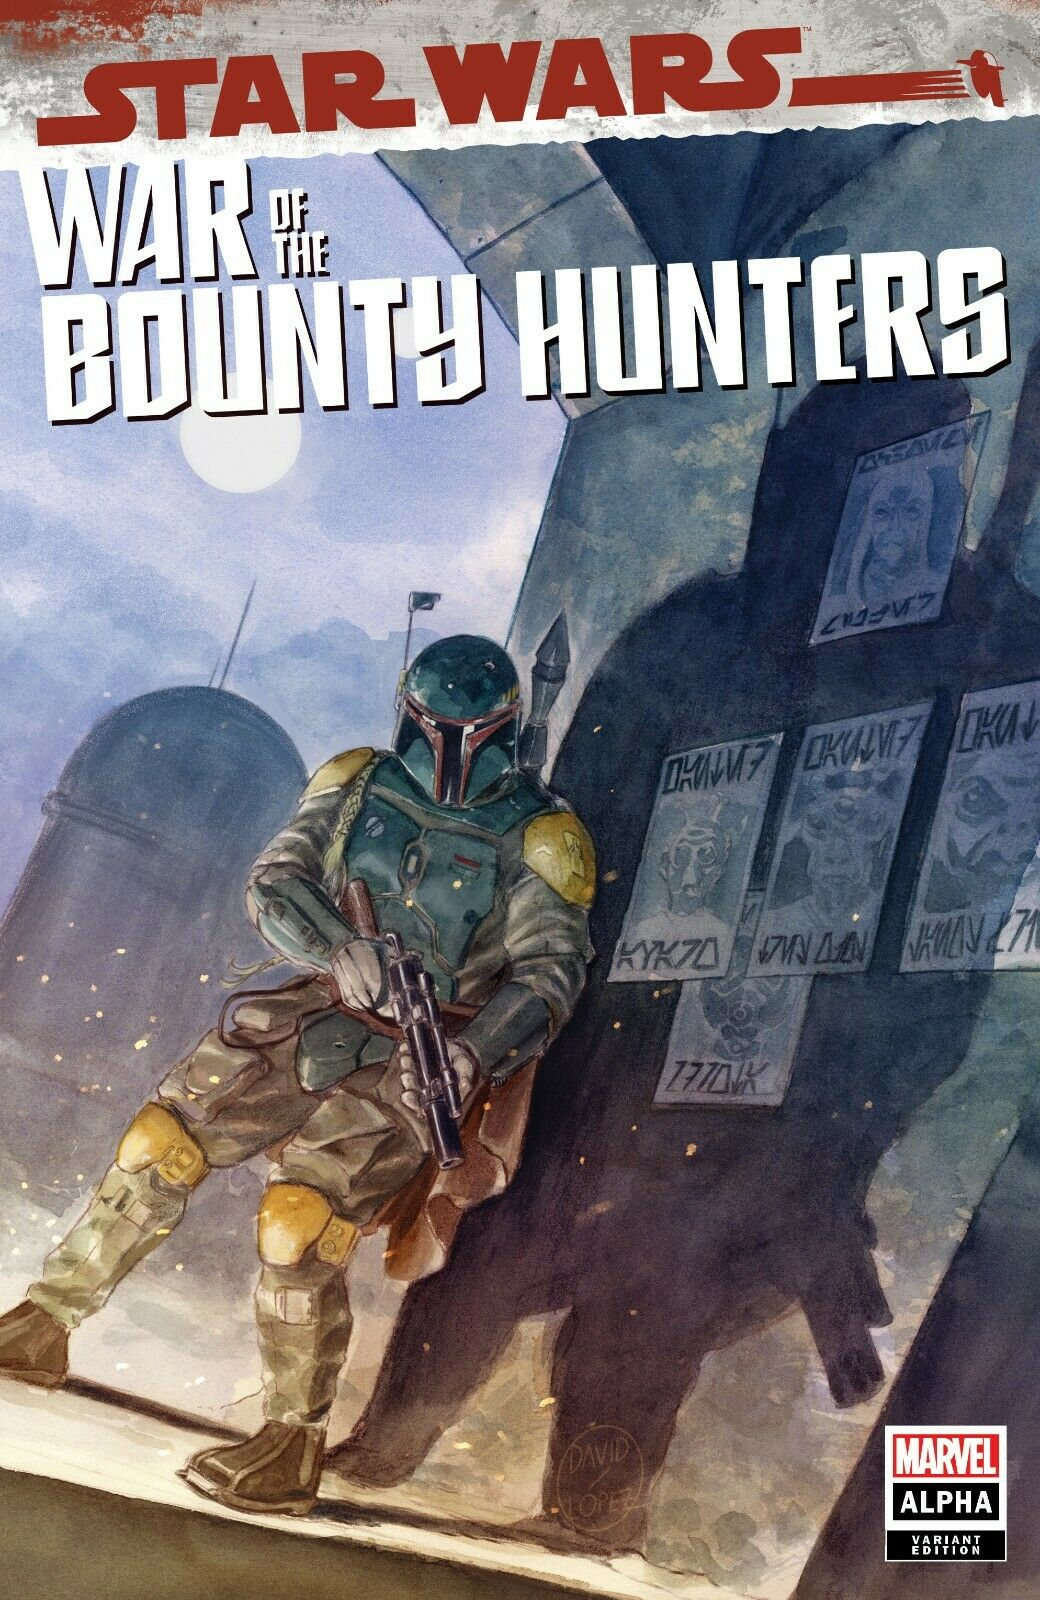 Star Wars: War of the Bounty Hunters Alpha - Mega Gaming Variant